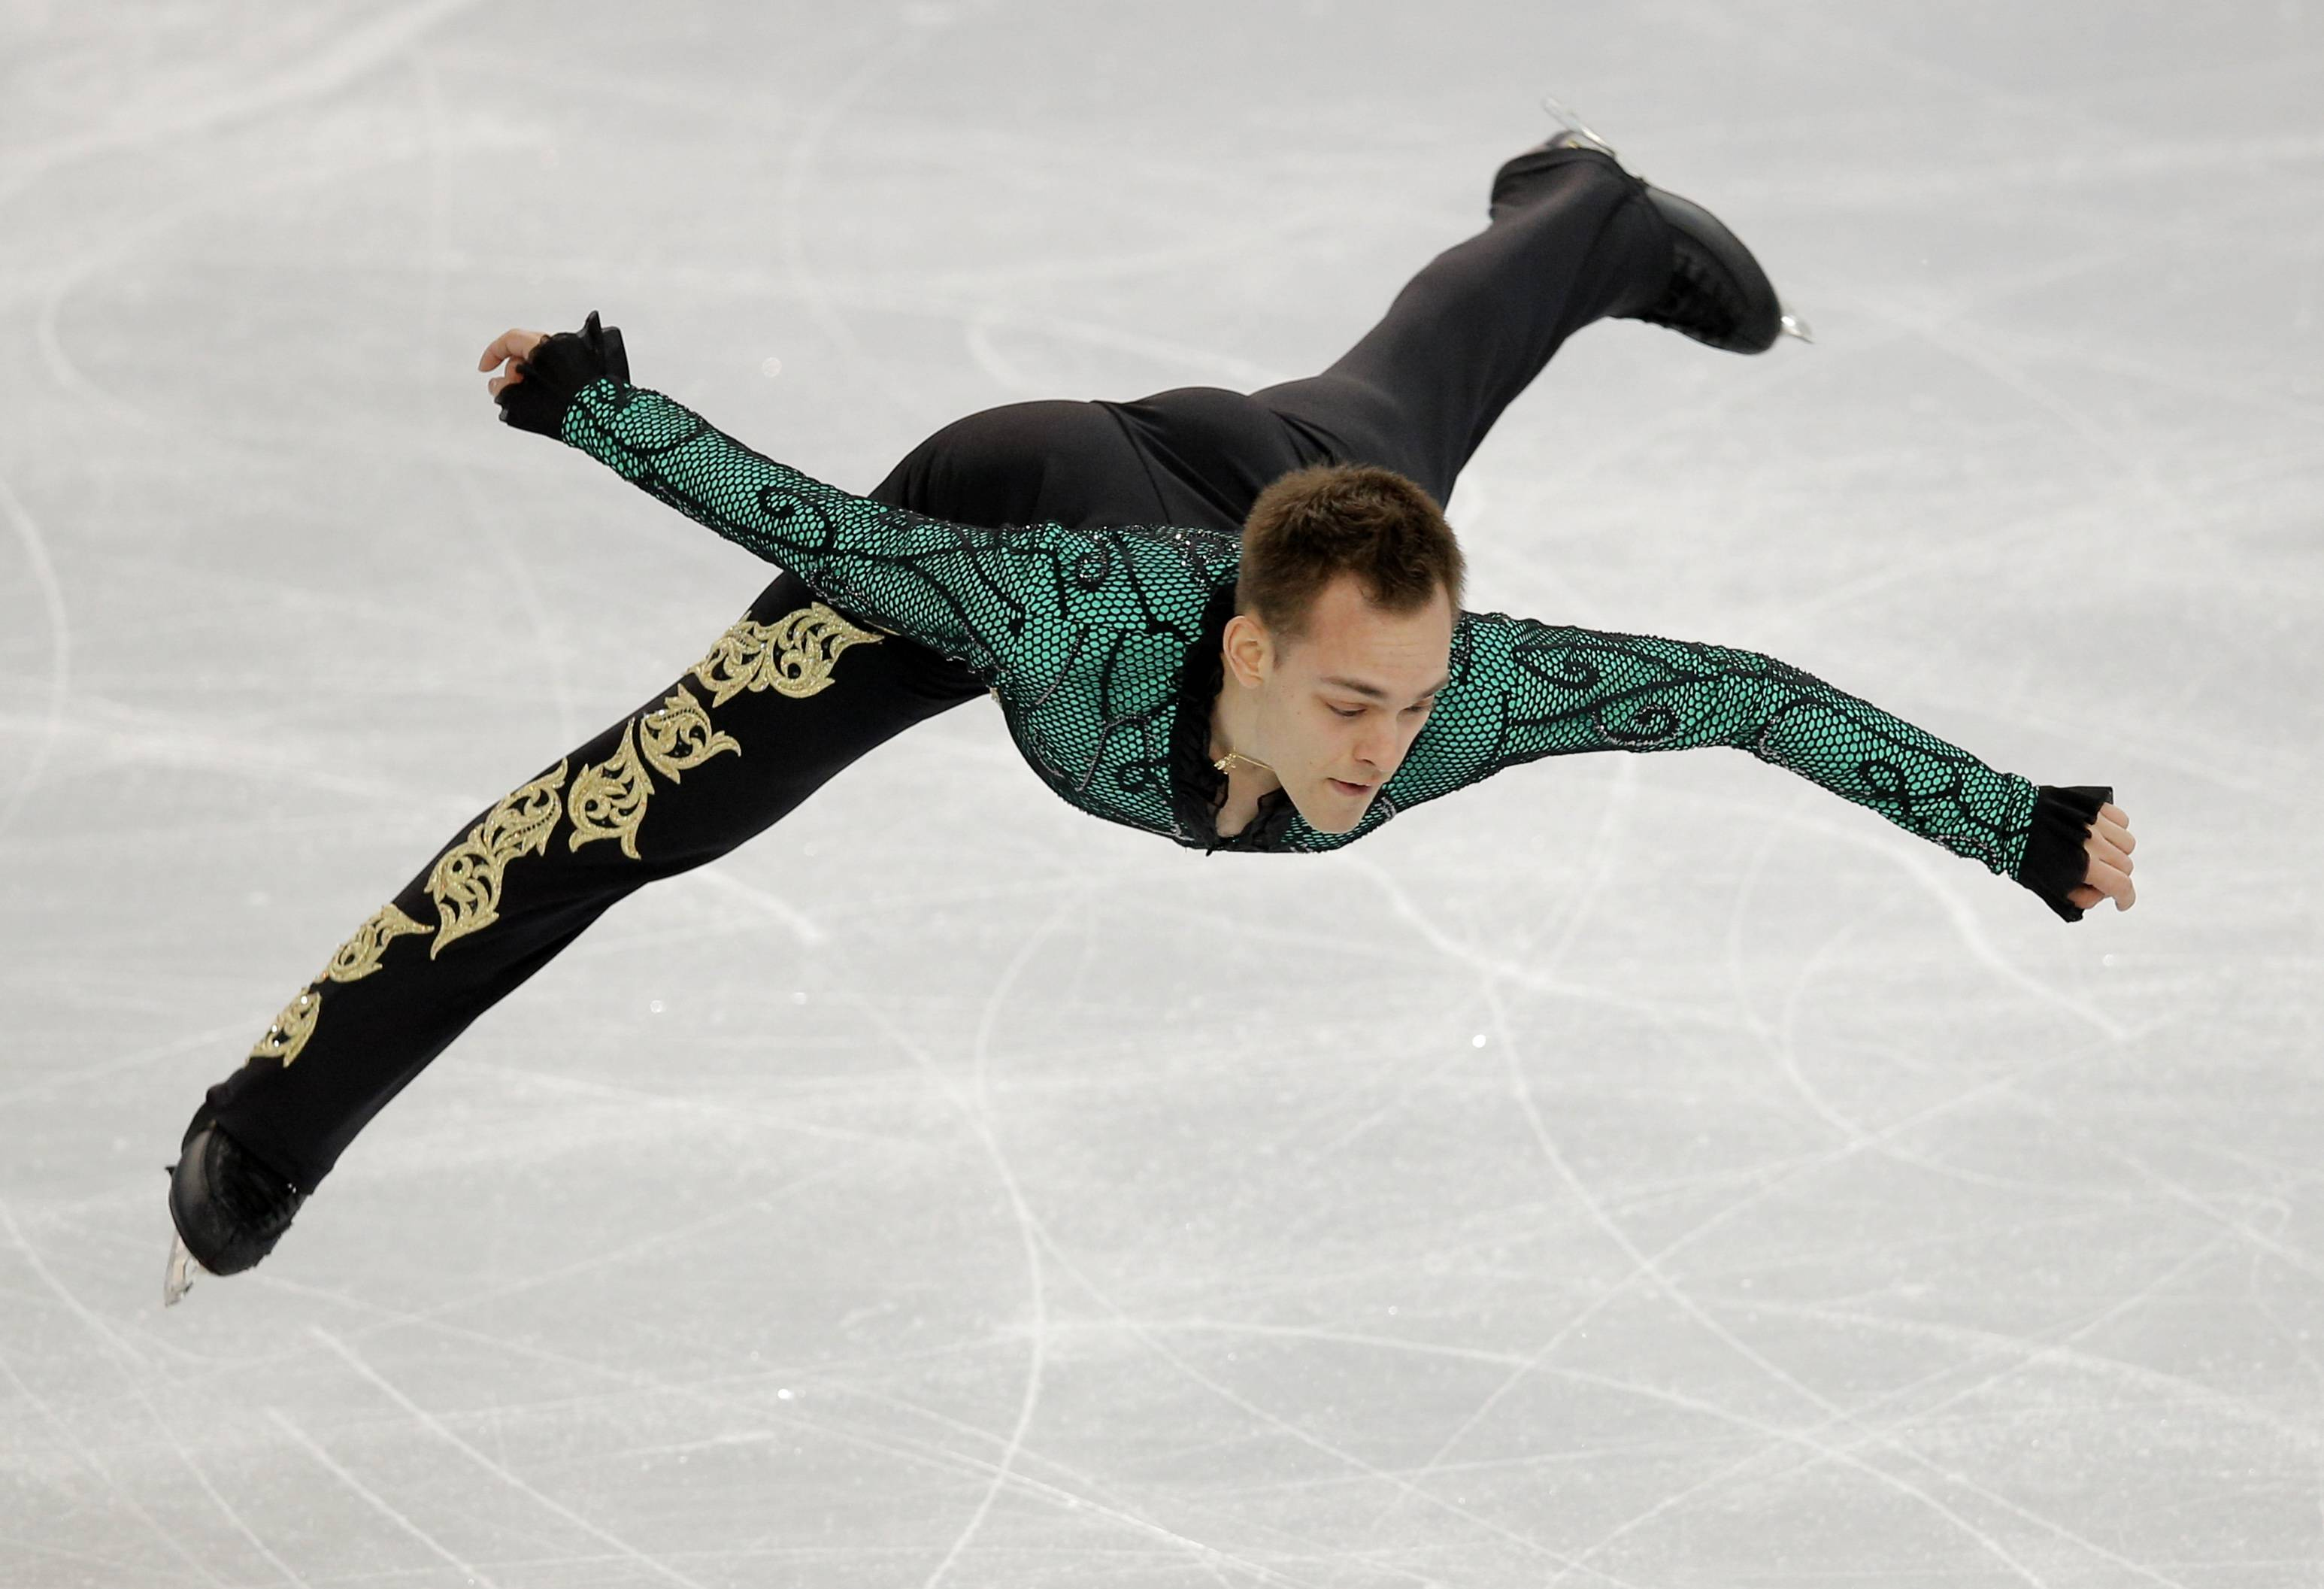 Paul Bonifacio Parkinson of Italy competes in the men's short program figure skating competition.